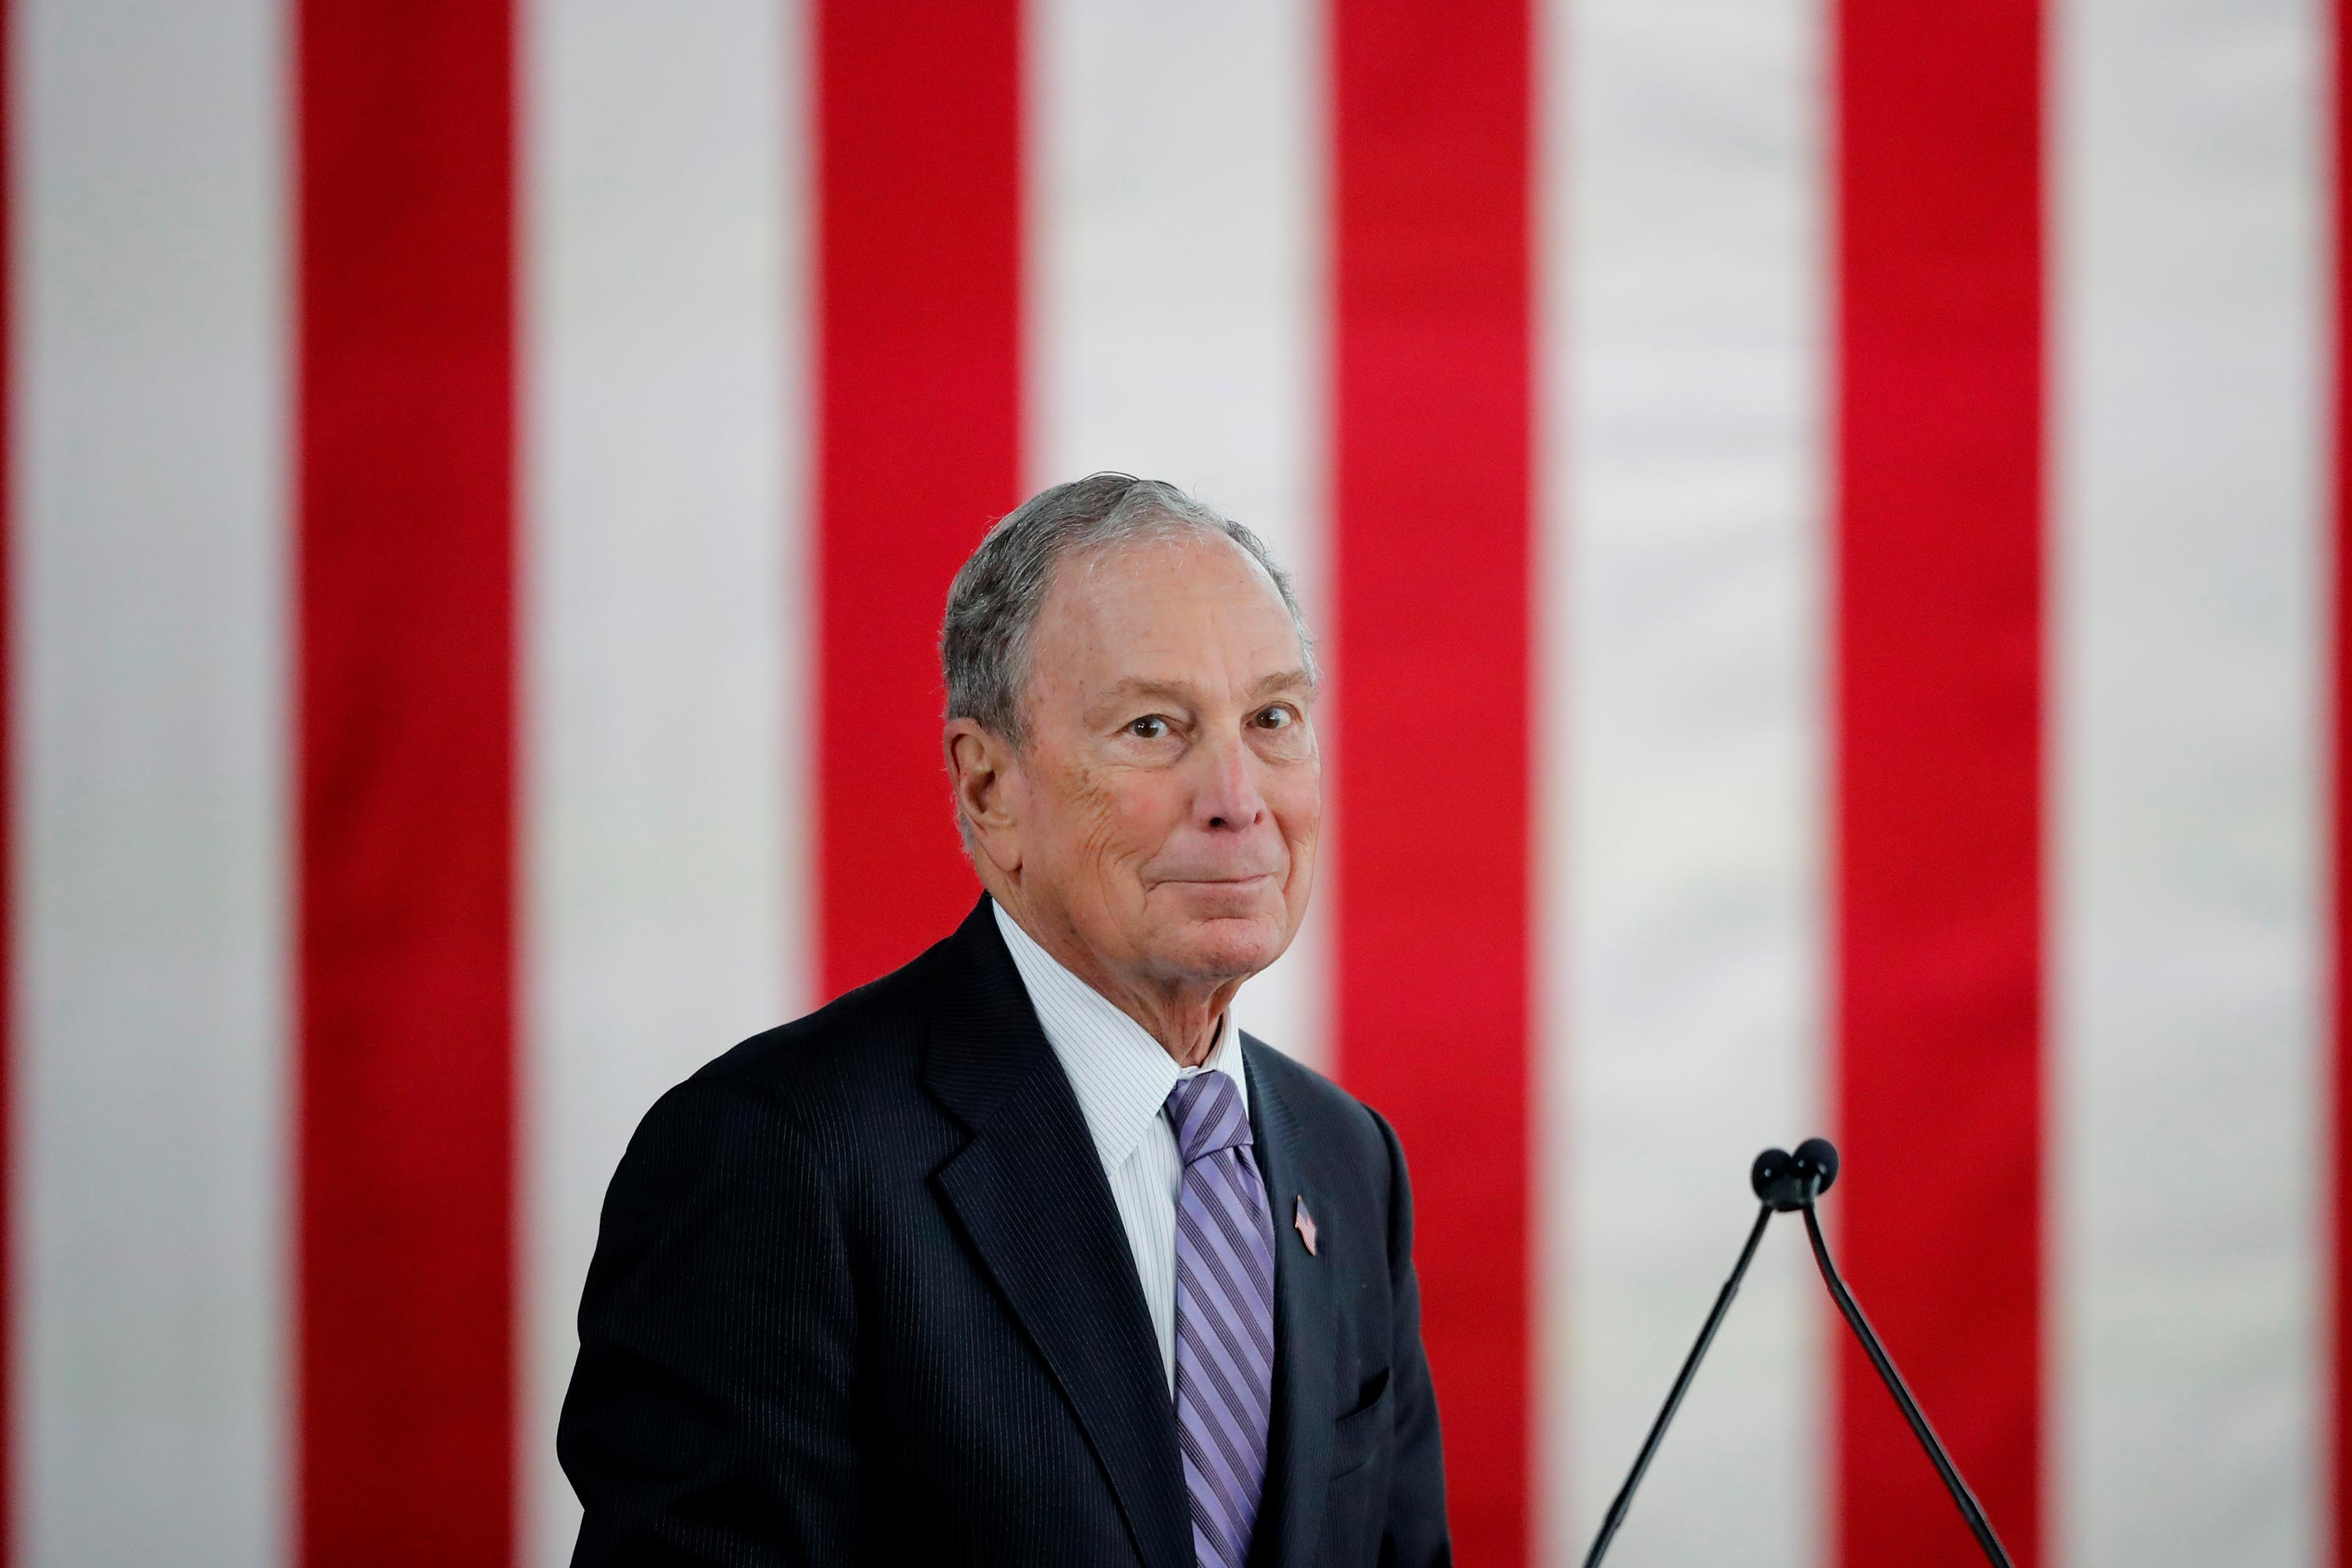 Bloomberg referred to transgender people as 'some guy wearing a dress' in 2019 remarks